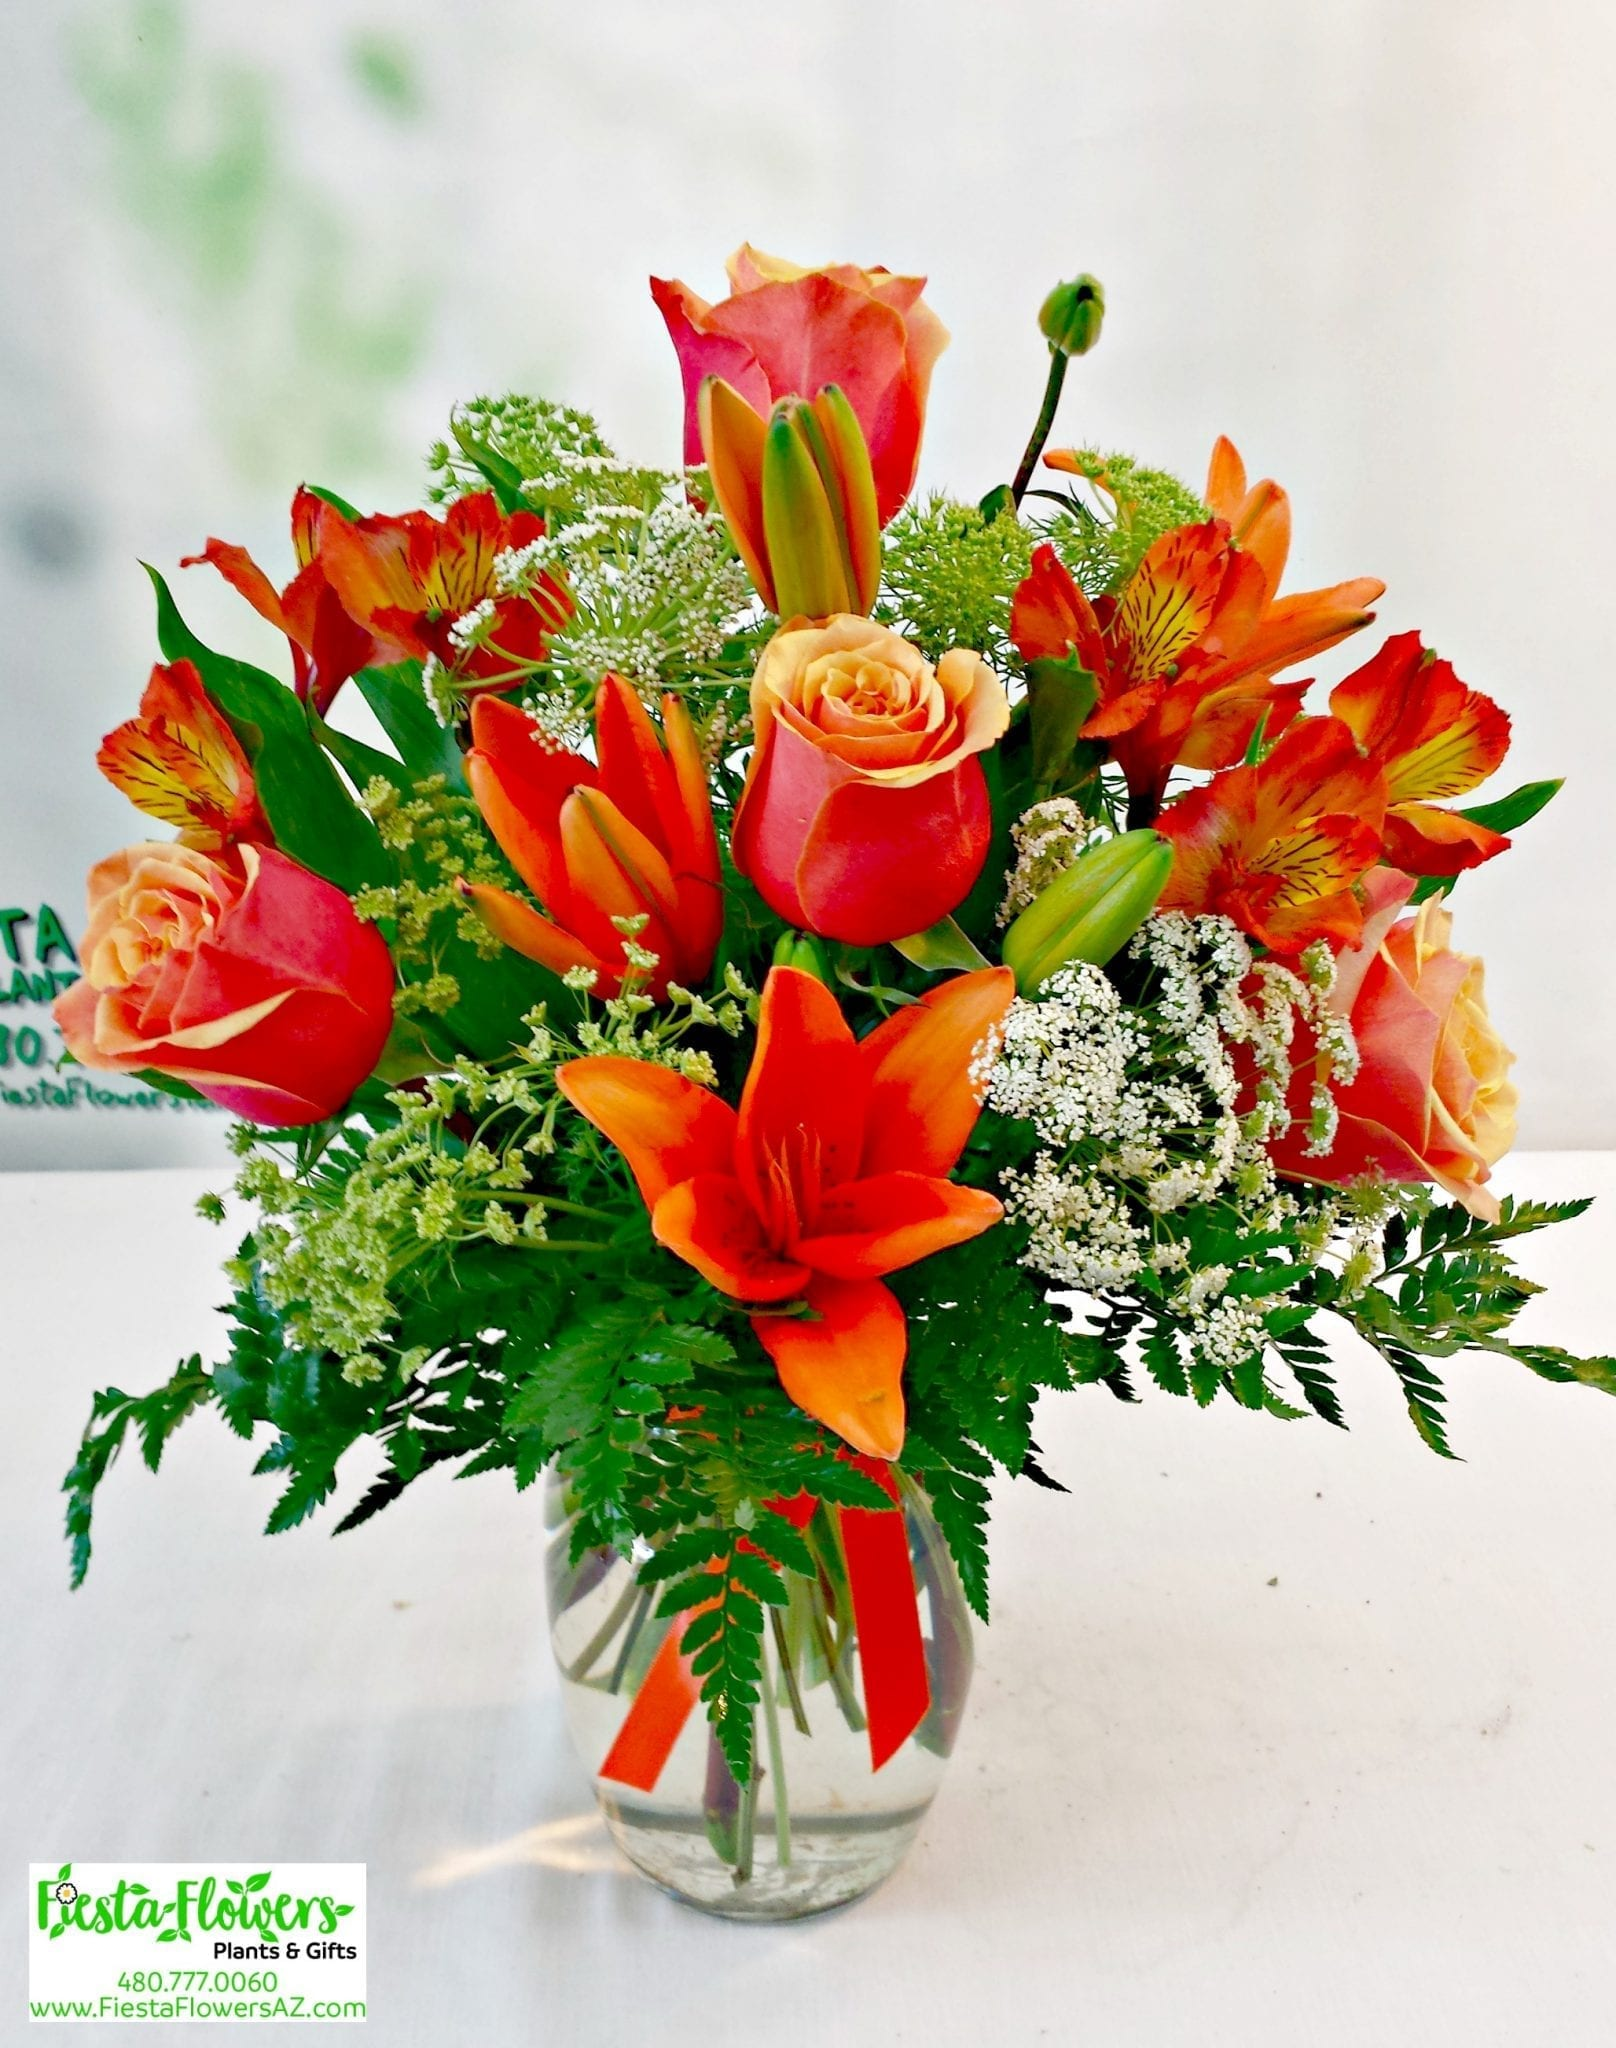 Get Well Flowers - Same Day Delivery - Fiesta Flowers Plants & Gifts